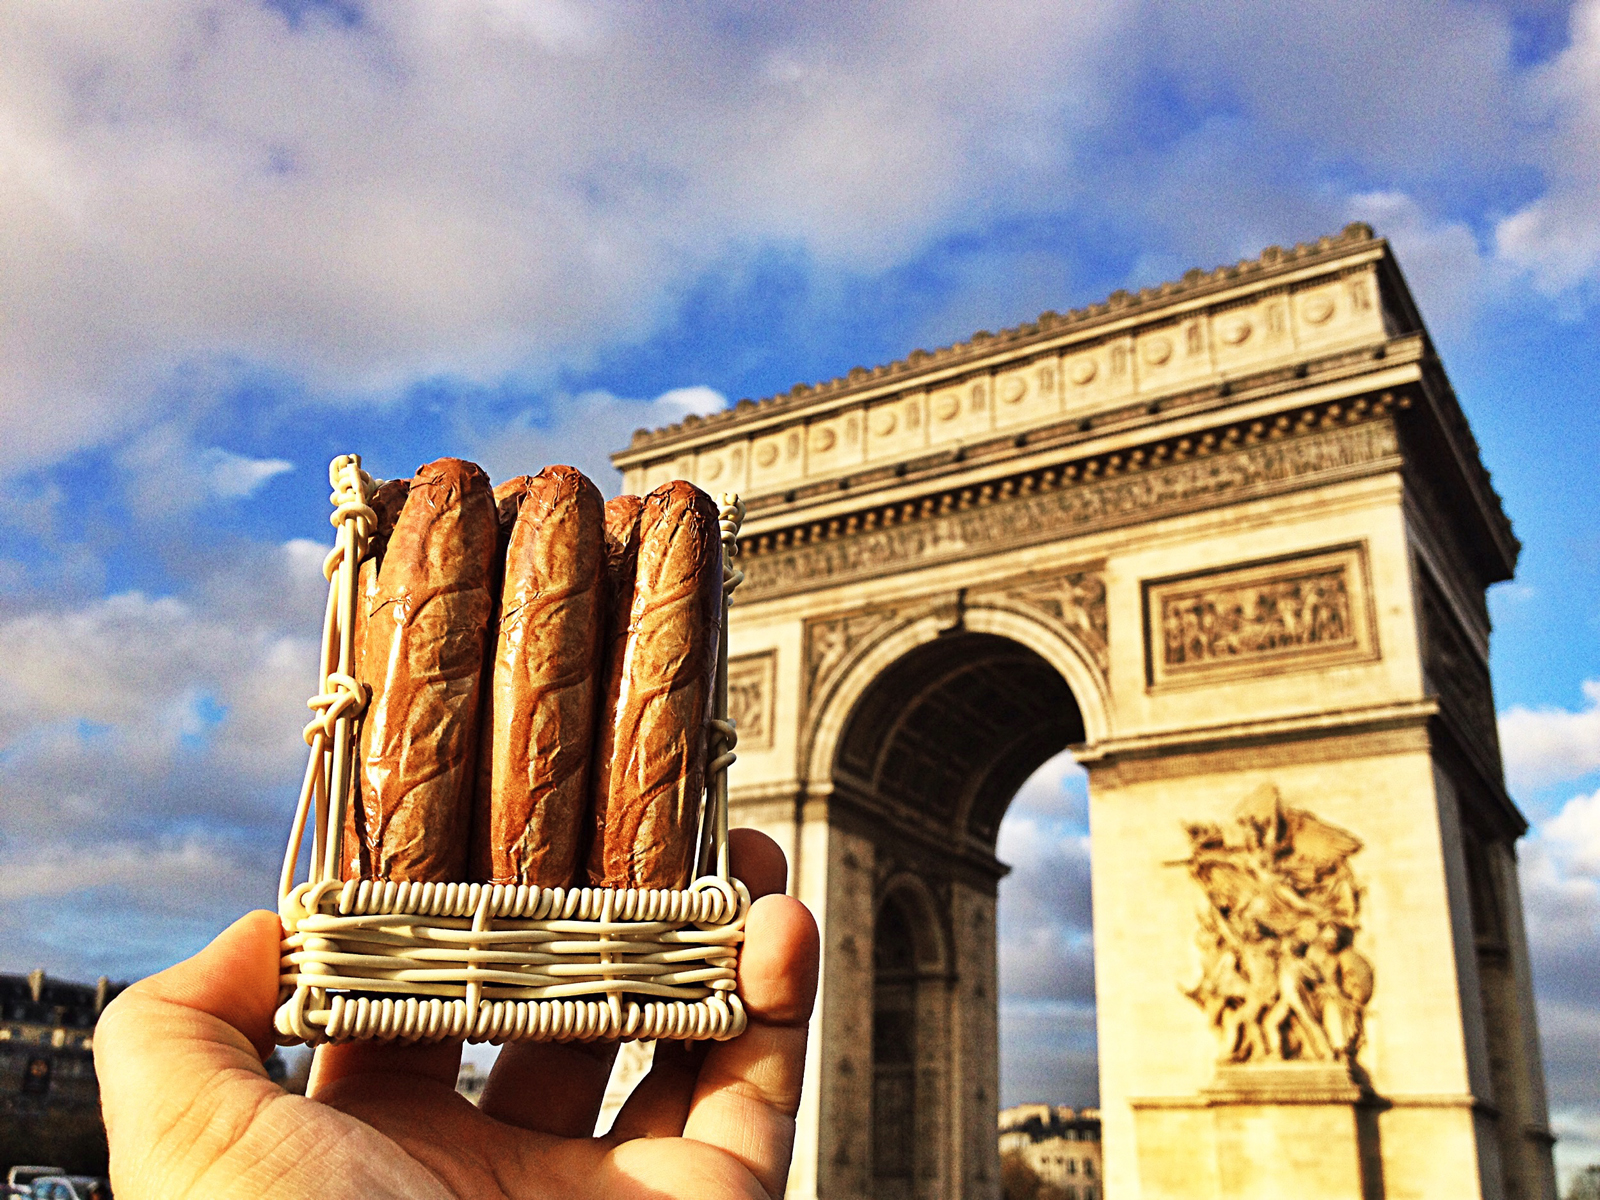 Baguettes en chocolat au lait milk chocolate french baguette devant Arc de Triomphe Champs Elysées manufacture Michel Cluizel chocolatier Damville photo united states of paris usofparis